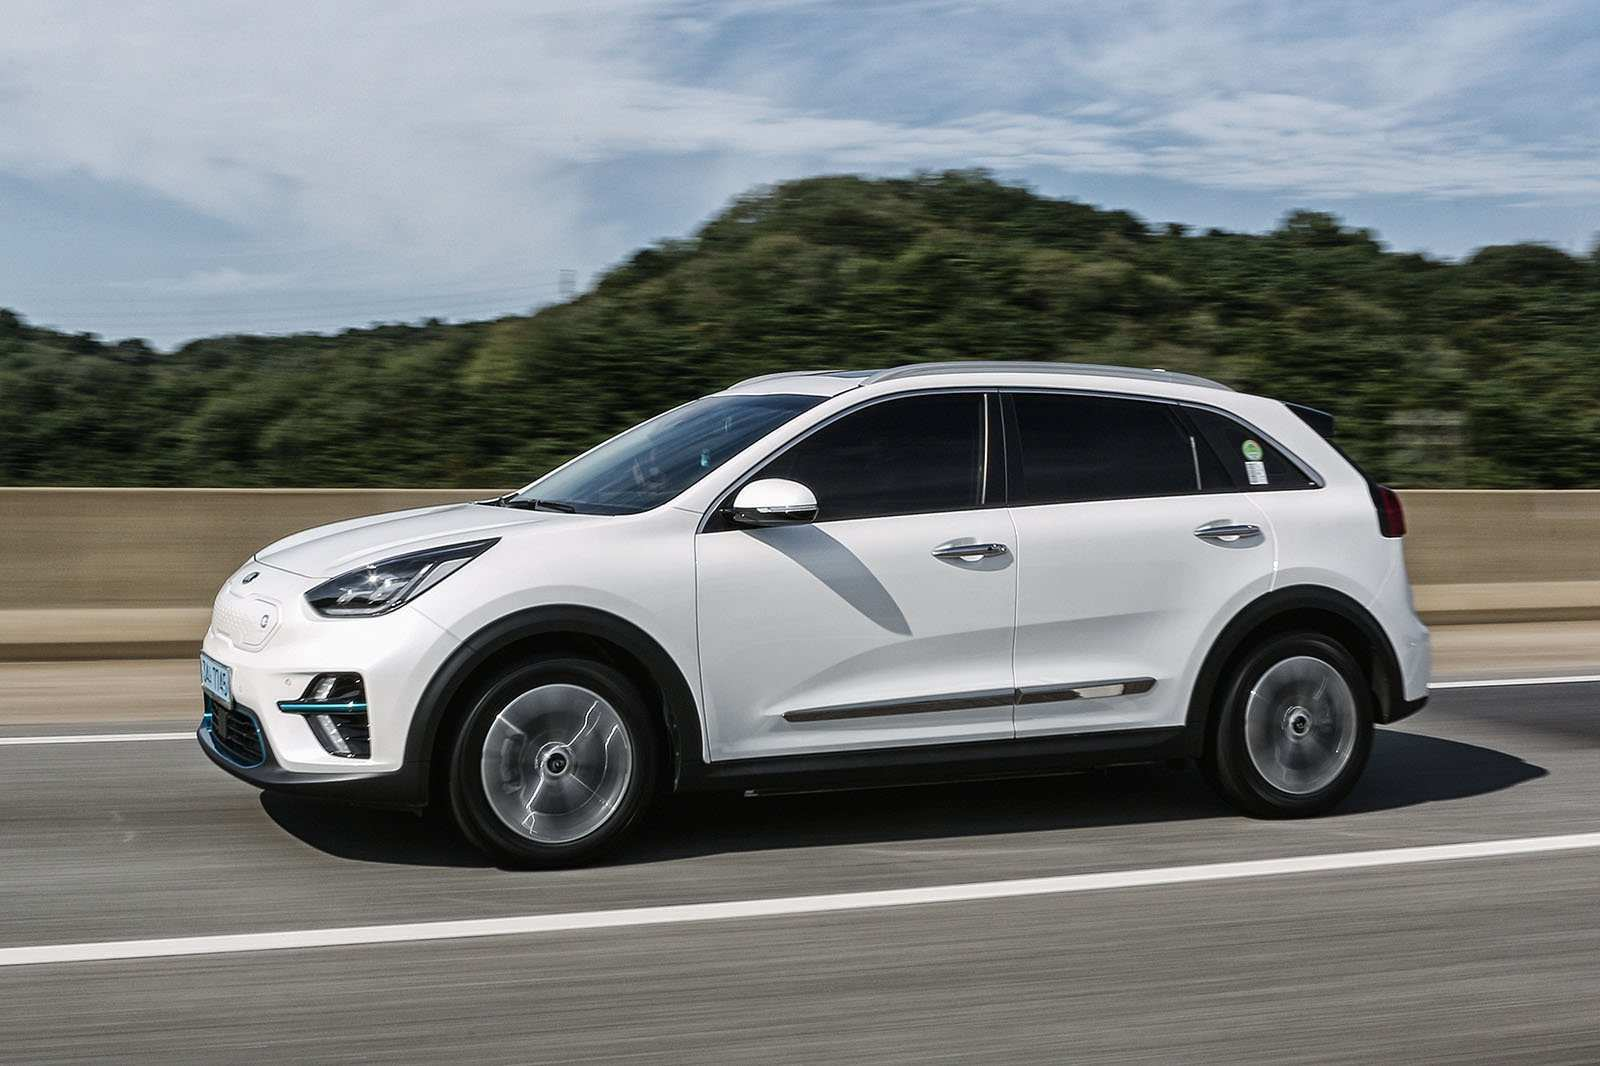 81 Best Review 2019 Kia Niro Ev Release Date Reviews by 2019 Kia Niro Ev Release Date